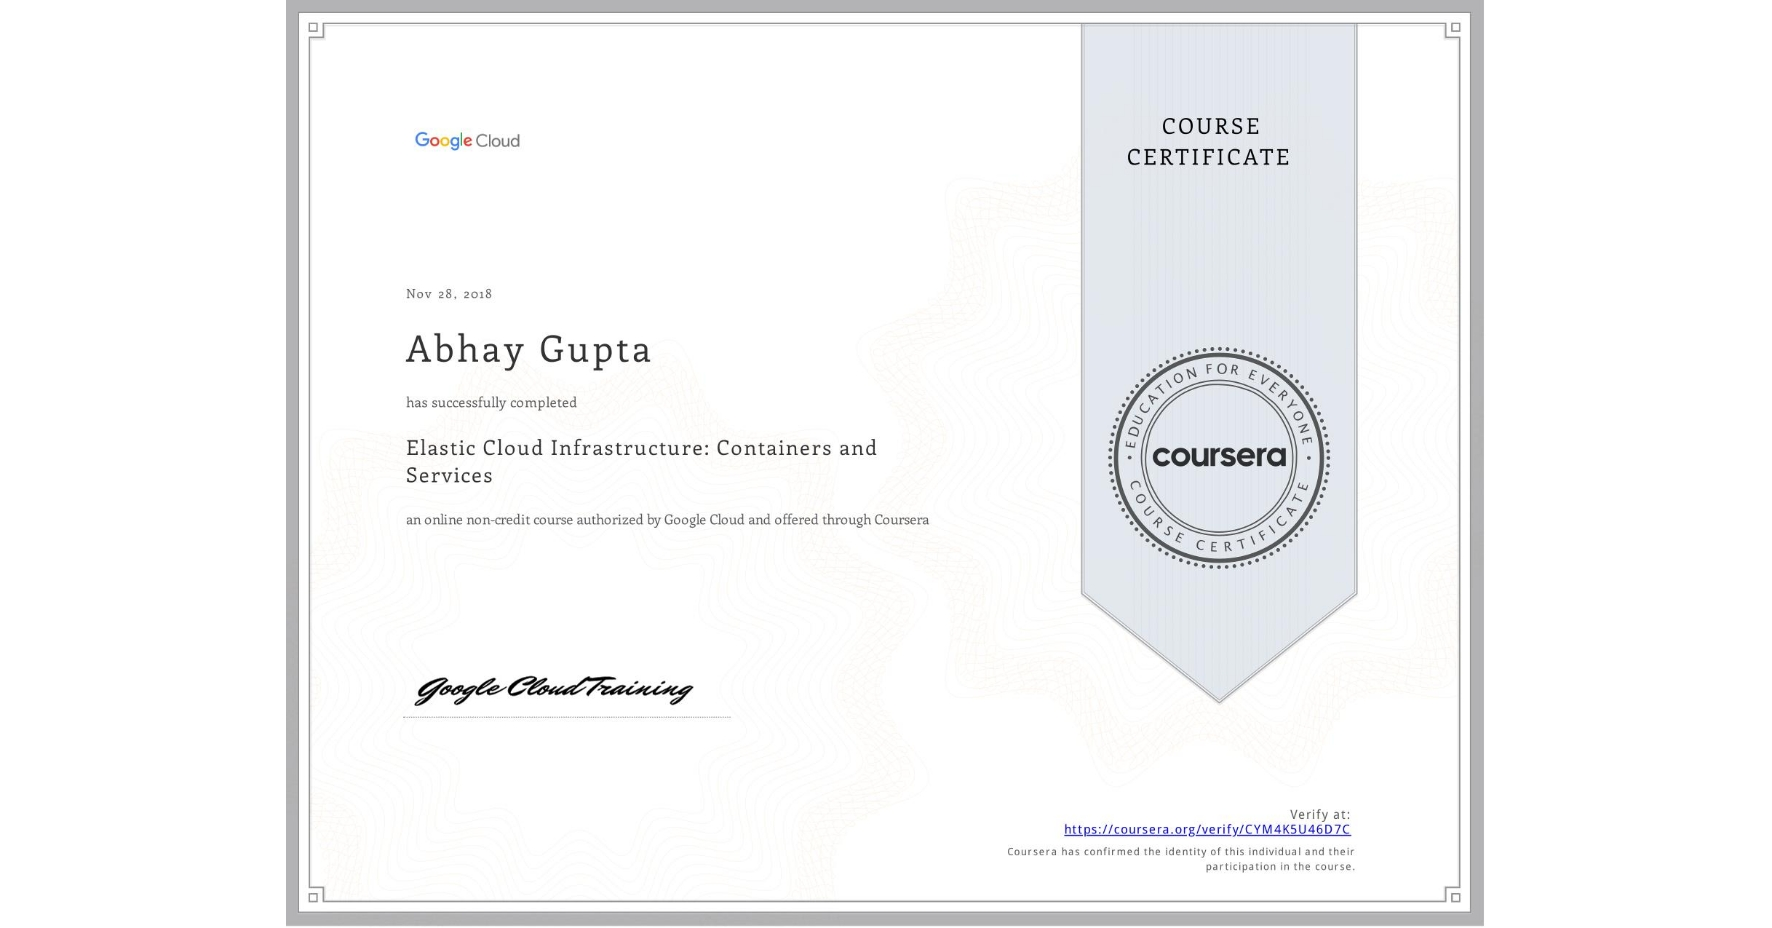 View certificate for Abhay Gupta, Elastic Cloud Infrastructure: Containers and Services, an online non-credit course authorized by Google Cloud and offered through Coursera